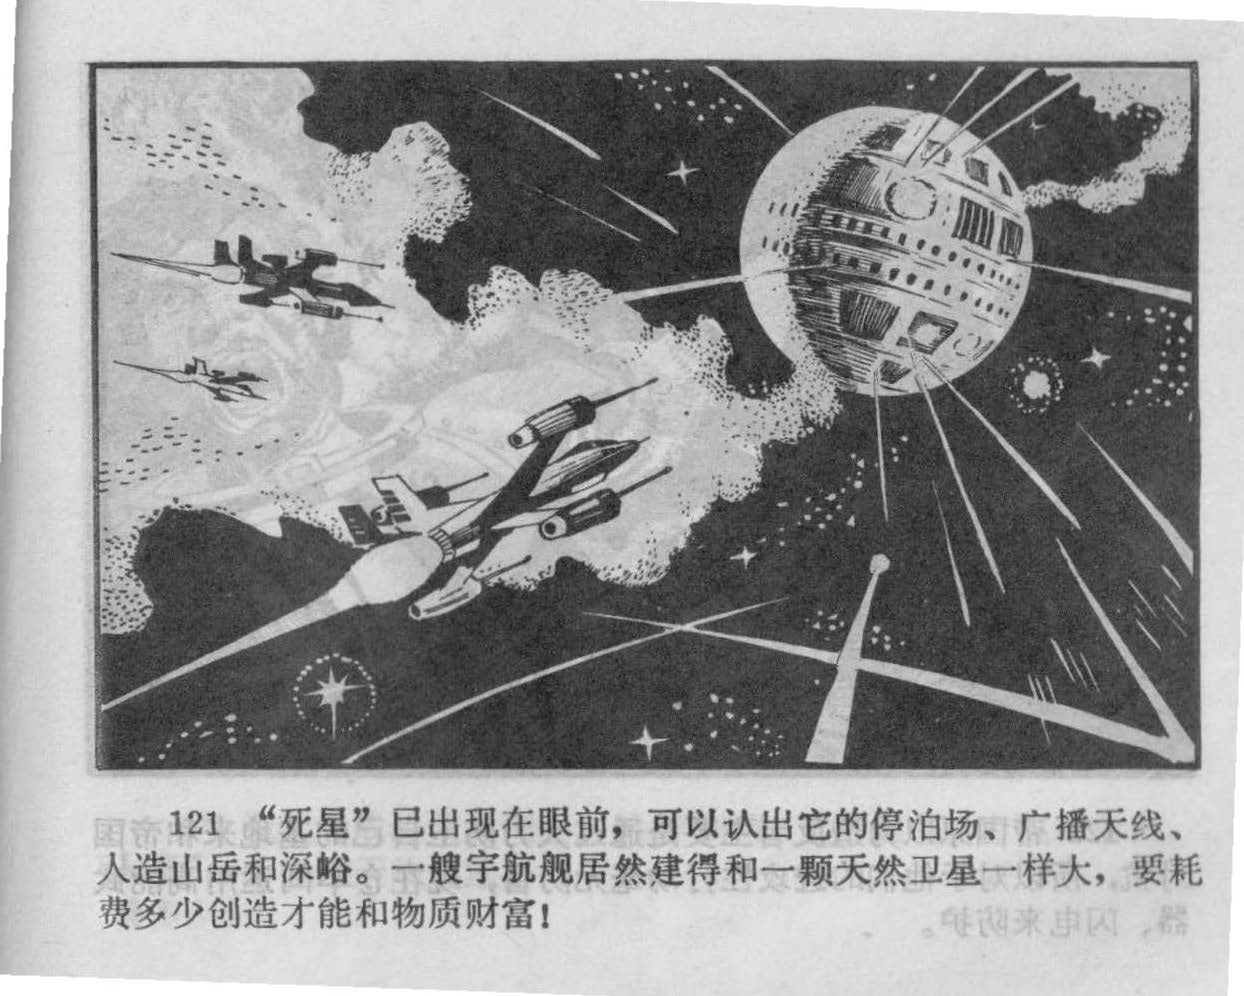 Chinese Star Wars Comic (Part 5 of 6): We have to destroy the Death Star!